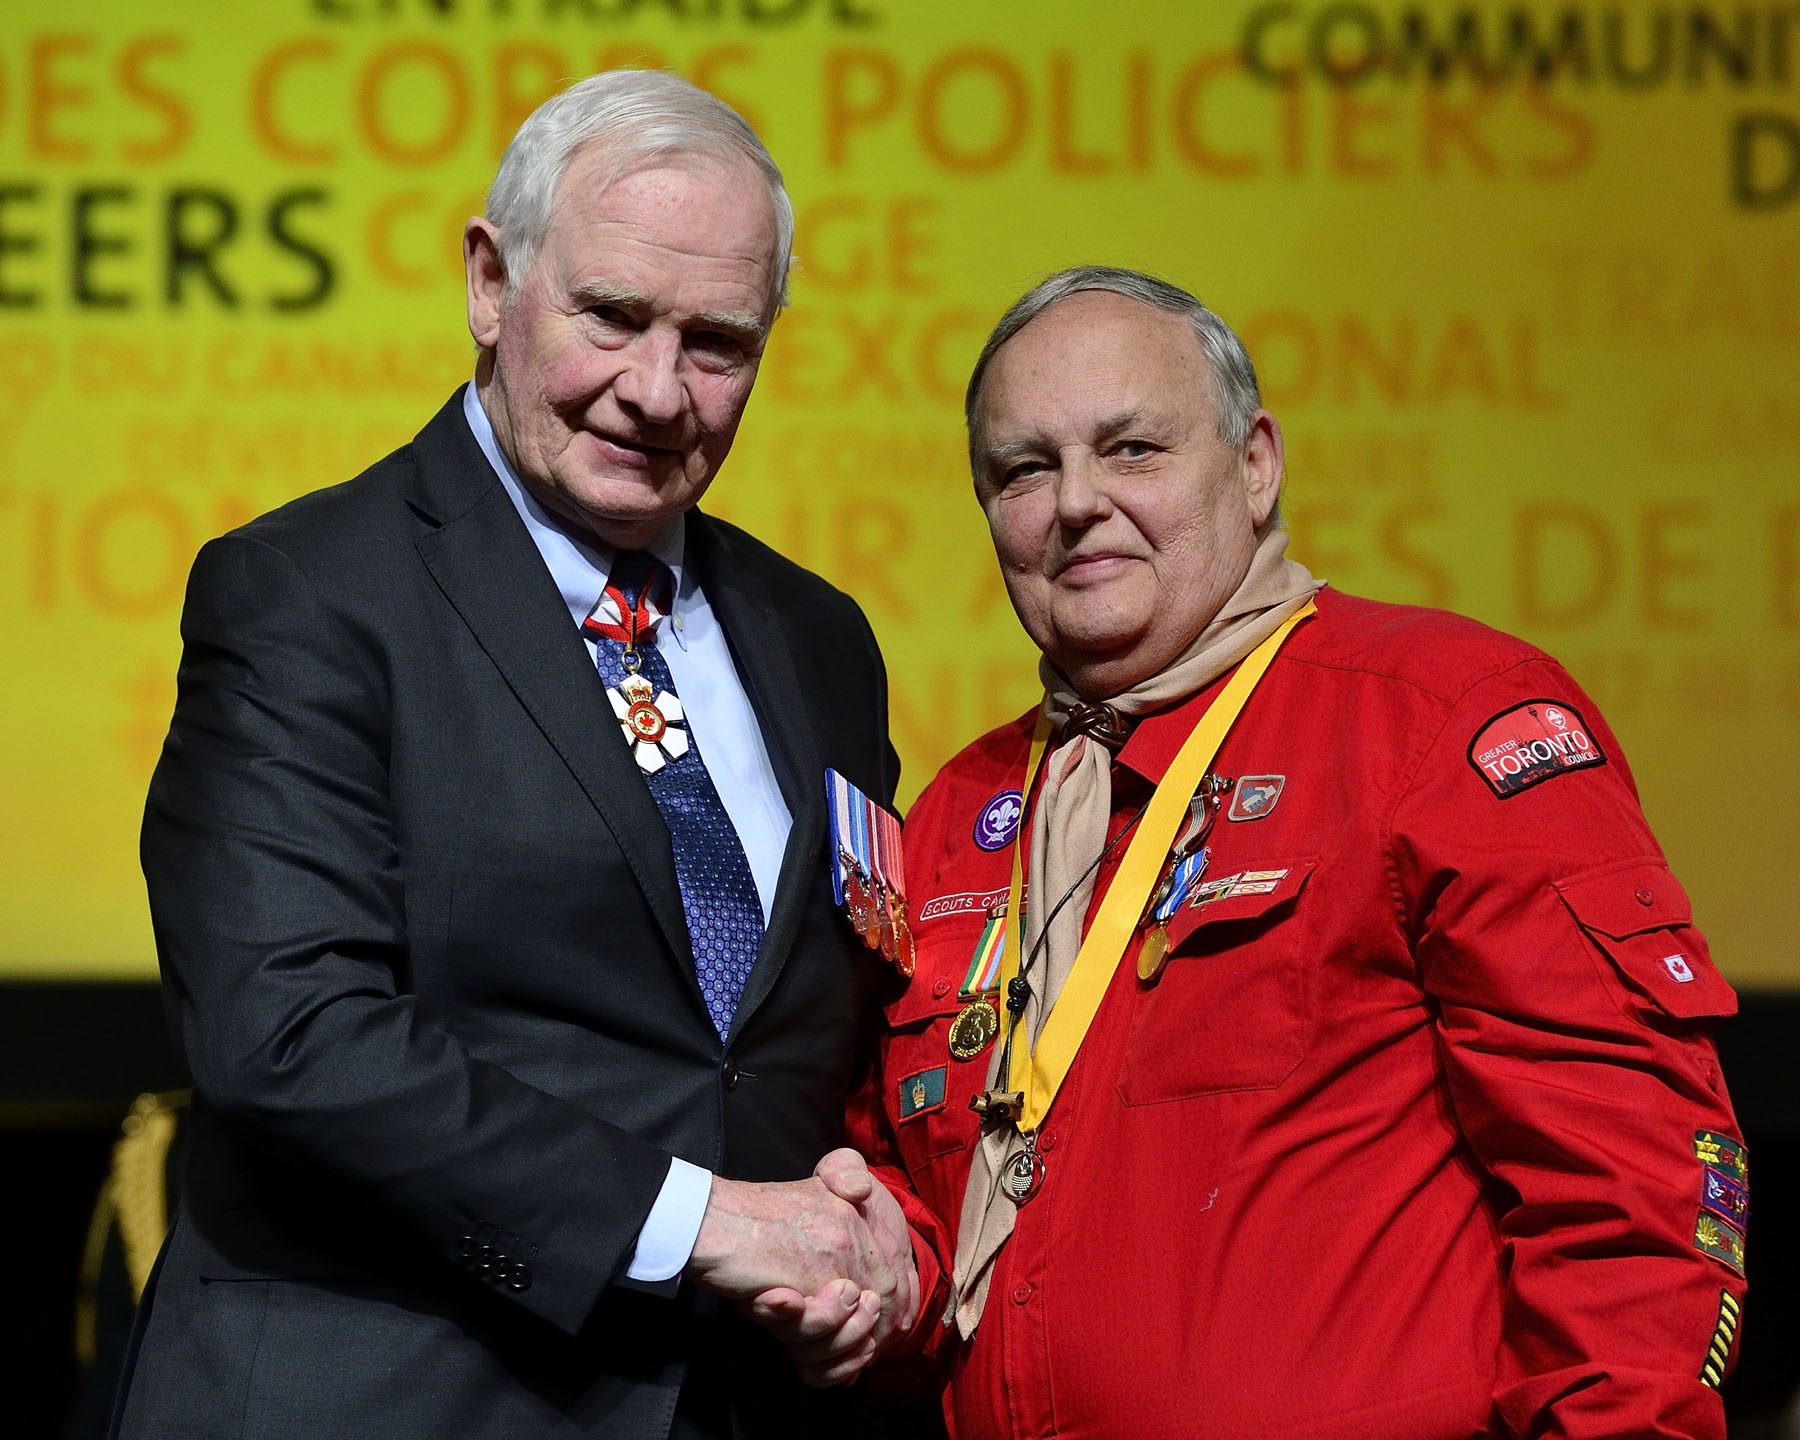 His Excellency presented the Sovereign's Medal for Volunteer to Doug Gough. For more than 50 years, Mr. Gough has been volunteering in various capacities with Scouts Canada, most recently as registrar of the Greater Toronto Council, where he helps administer the No One Left Behind program. Since 2011, he has been working with the Hospital for Sick Children (SickKids) in Toronto to help young patients register for modified scouting programs.